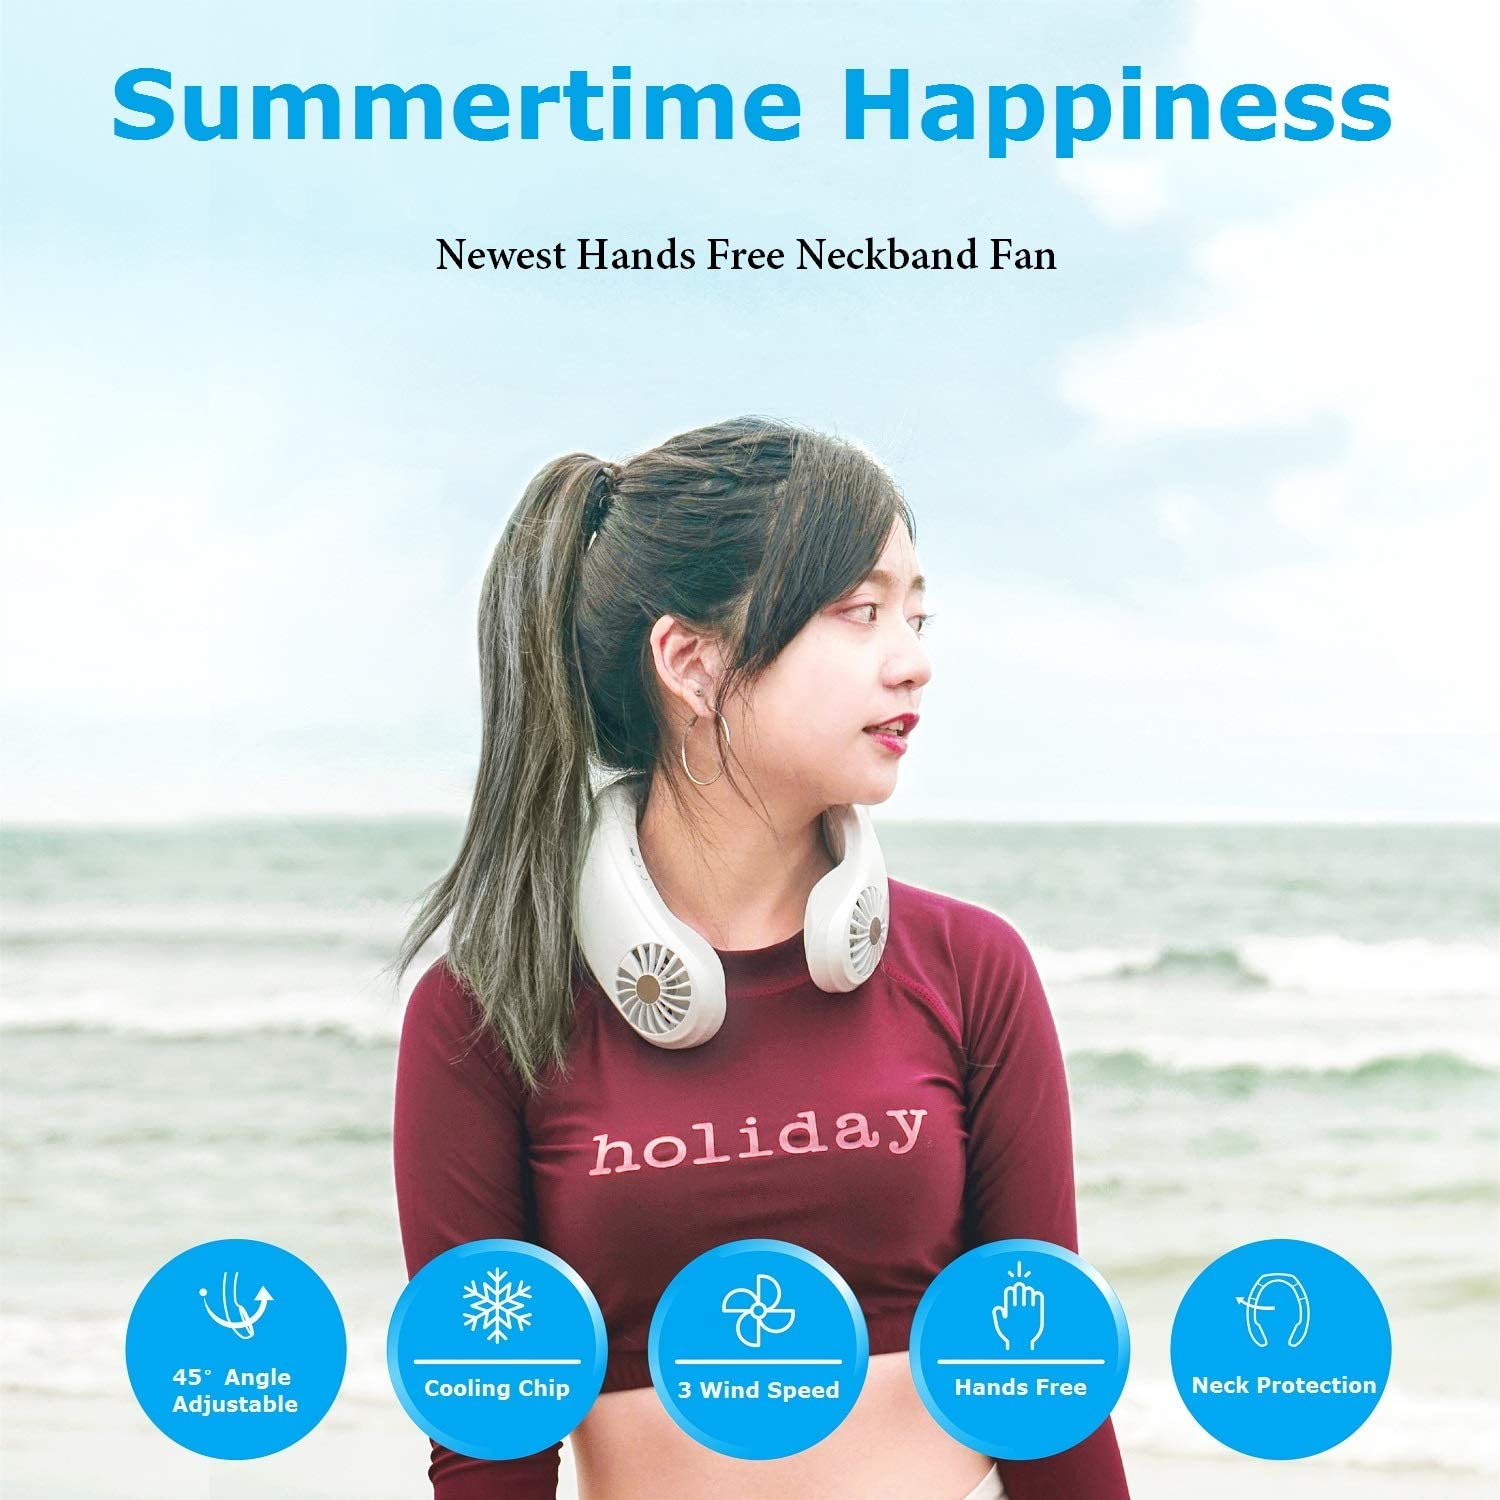 YOUDirect Neck Fan, 2020 Newest Hands Free Neckband Fan USB Rechargeable Air Conditioner Fan, Headphone Shaped Personal Cooling Fan with 3 Speeds for Home Office Outdoor Sports